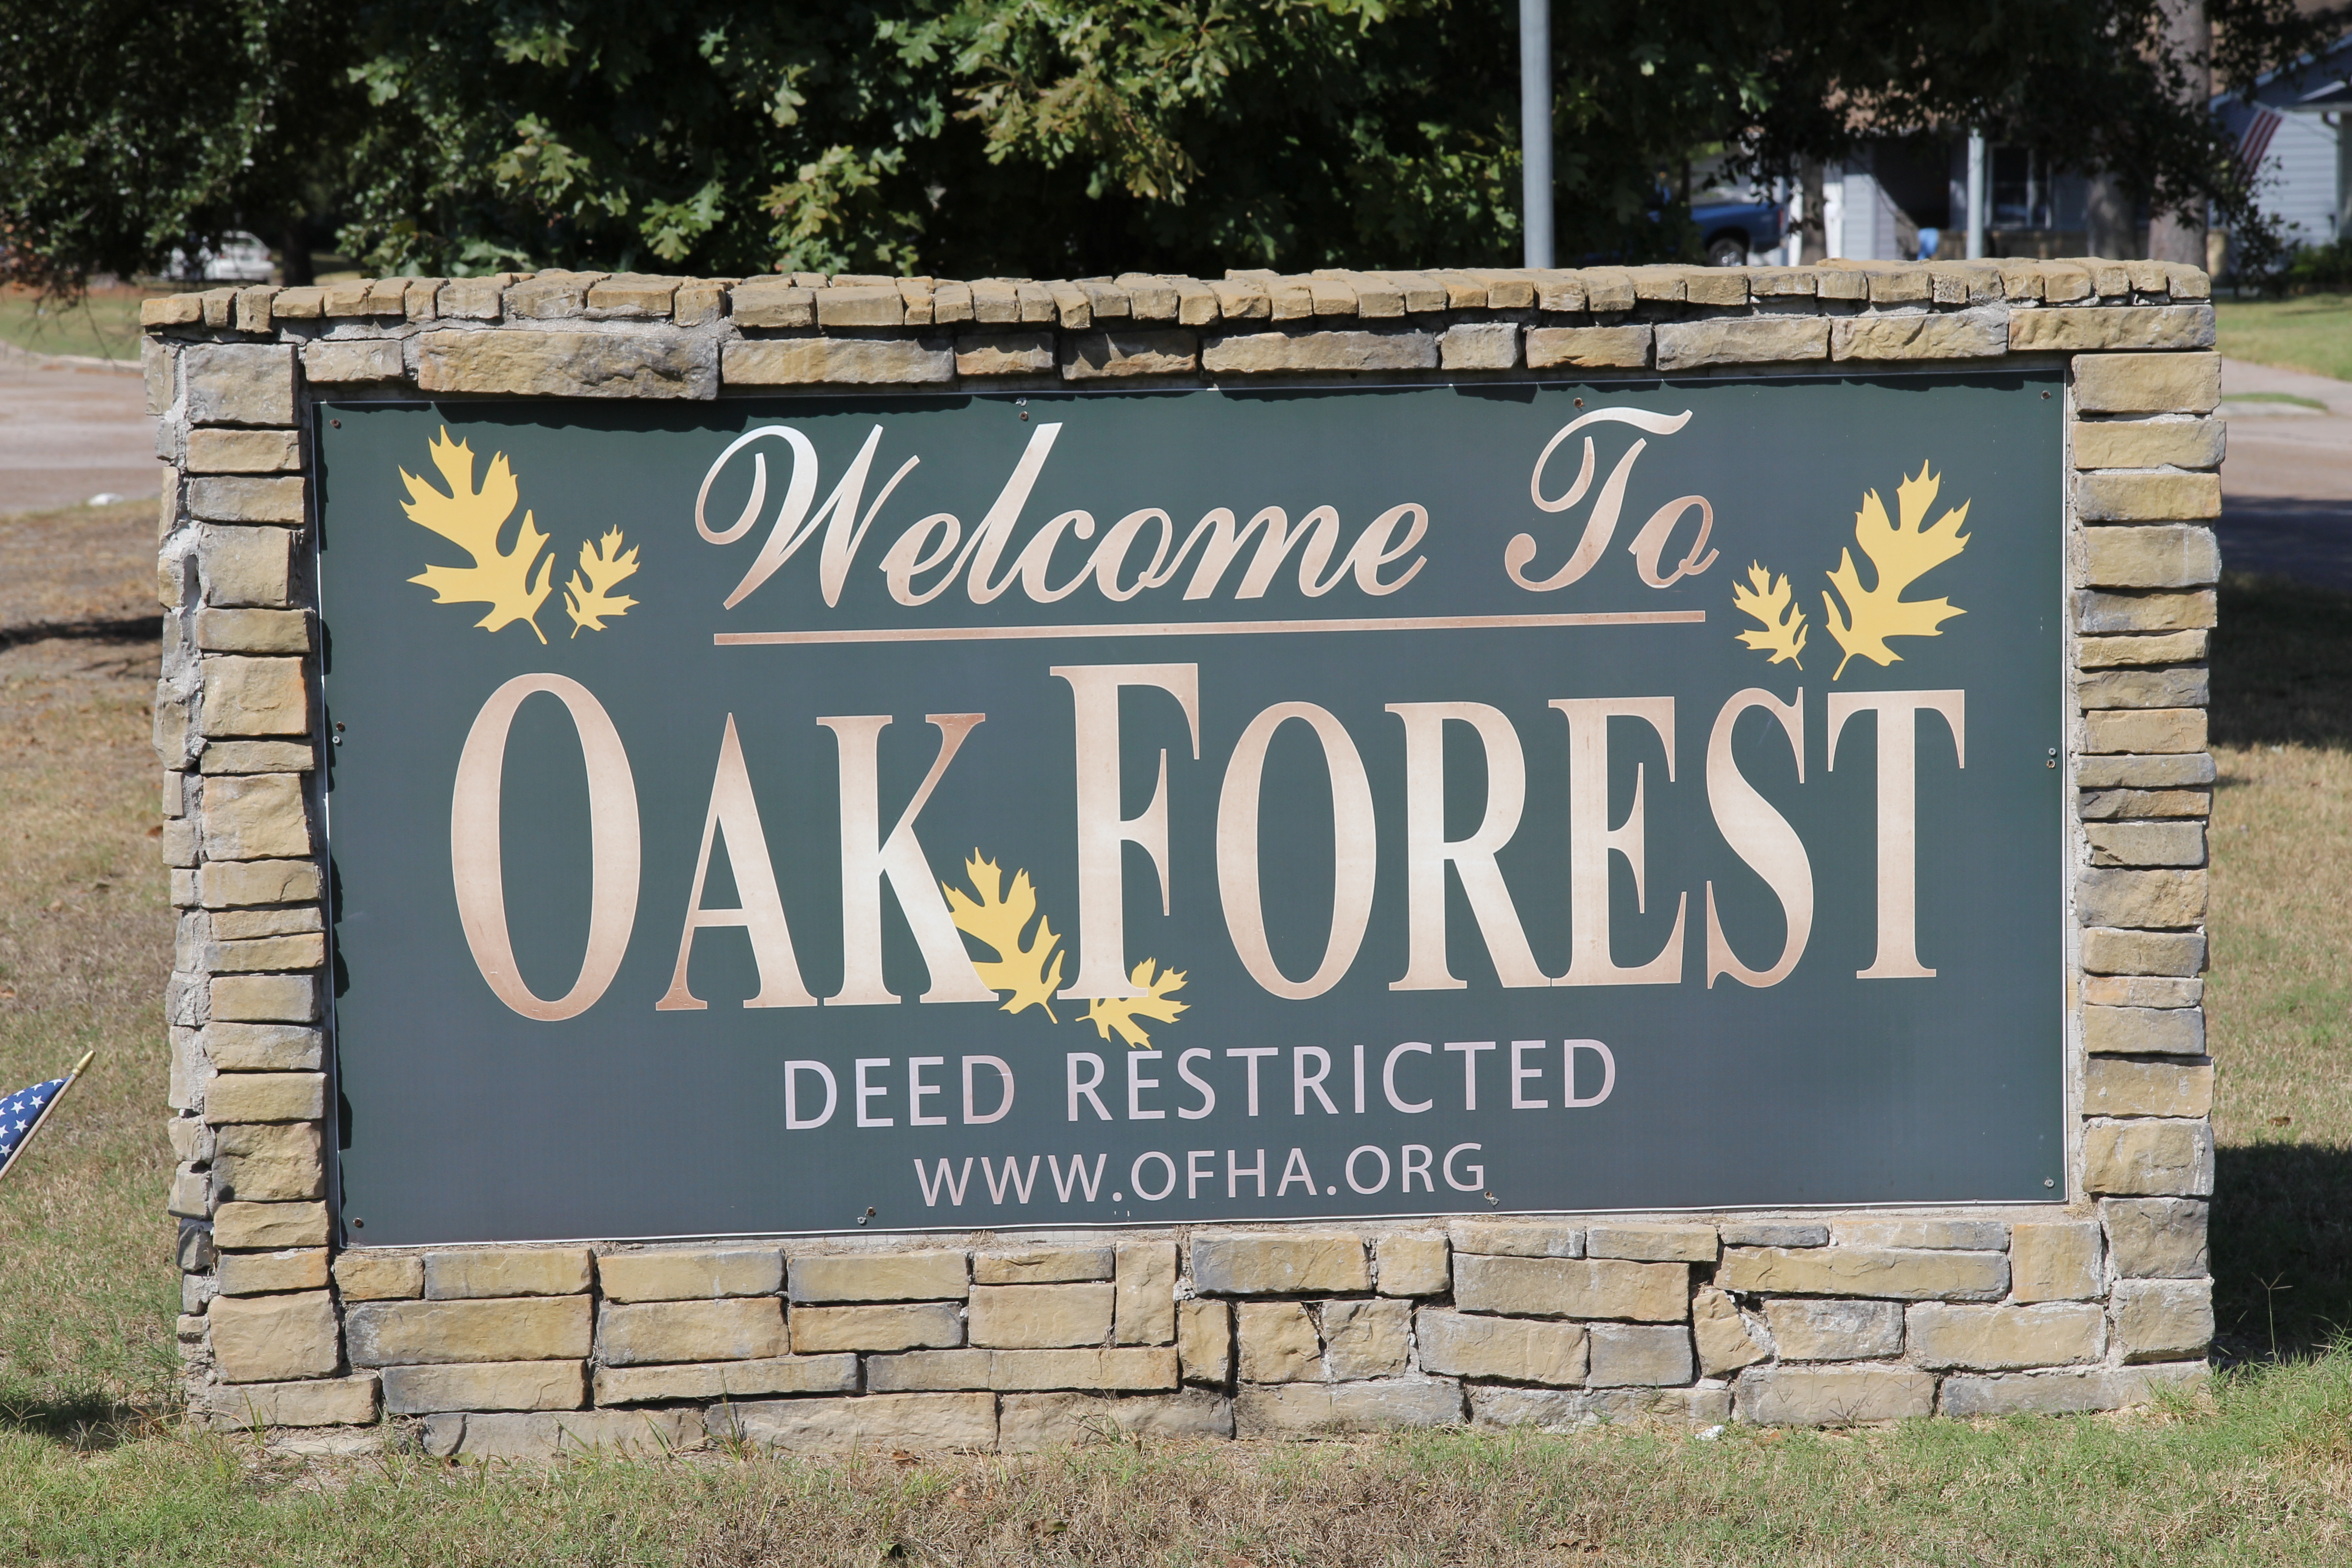 OAK FOREST NEIGHBORHOOD